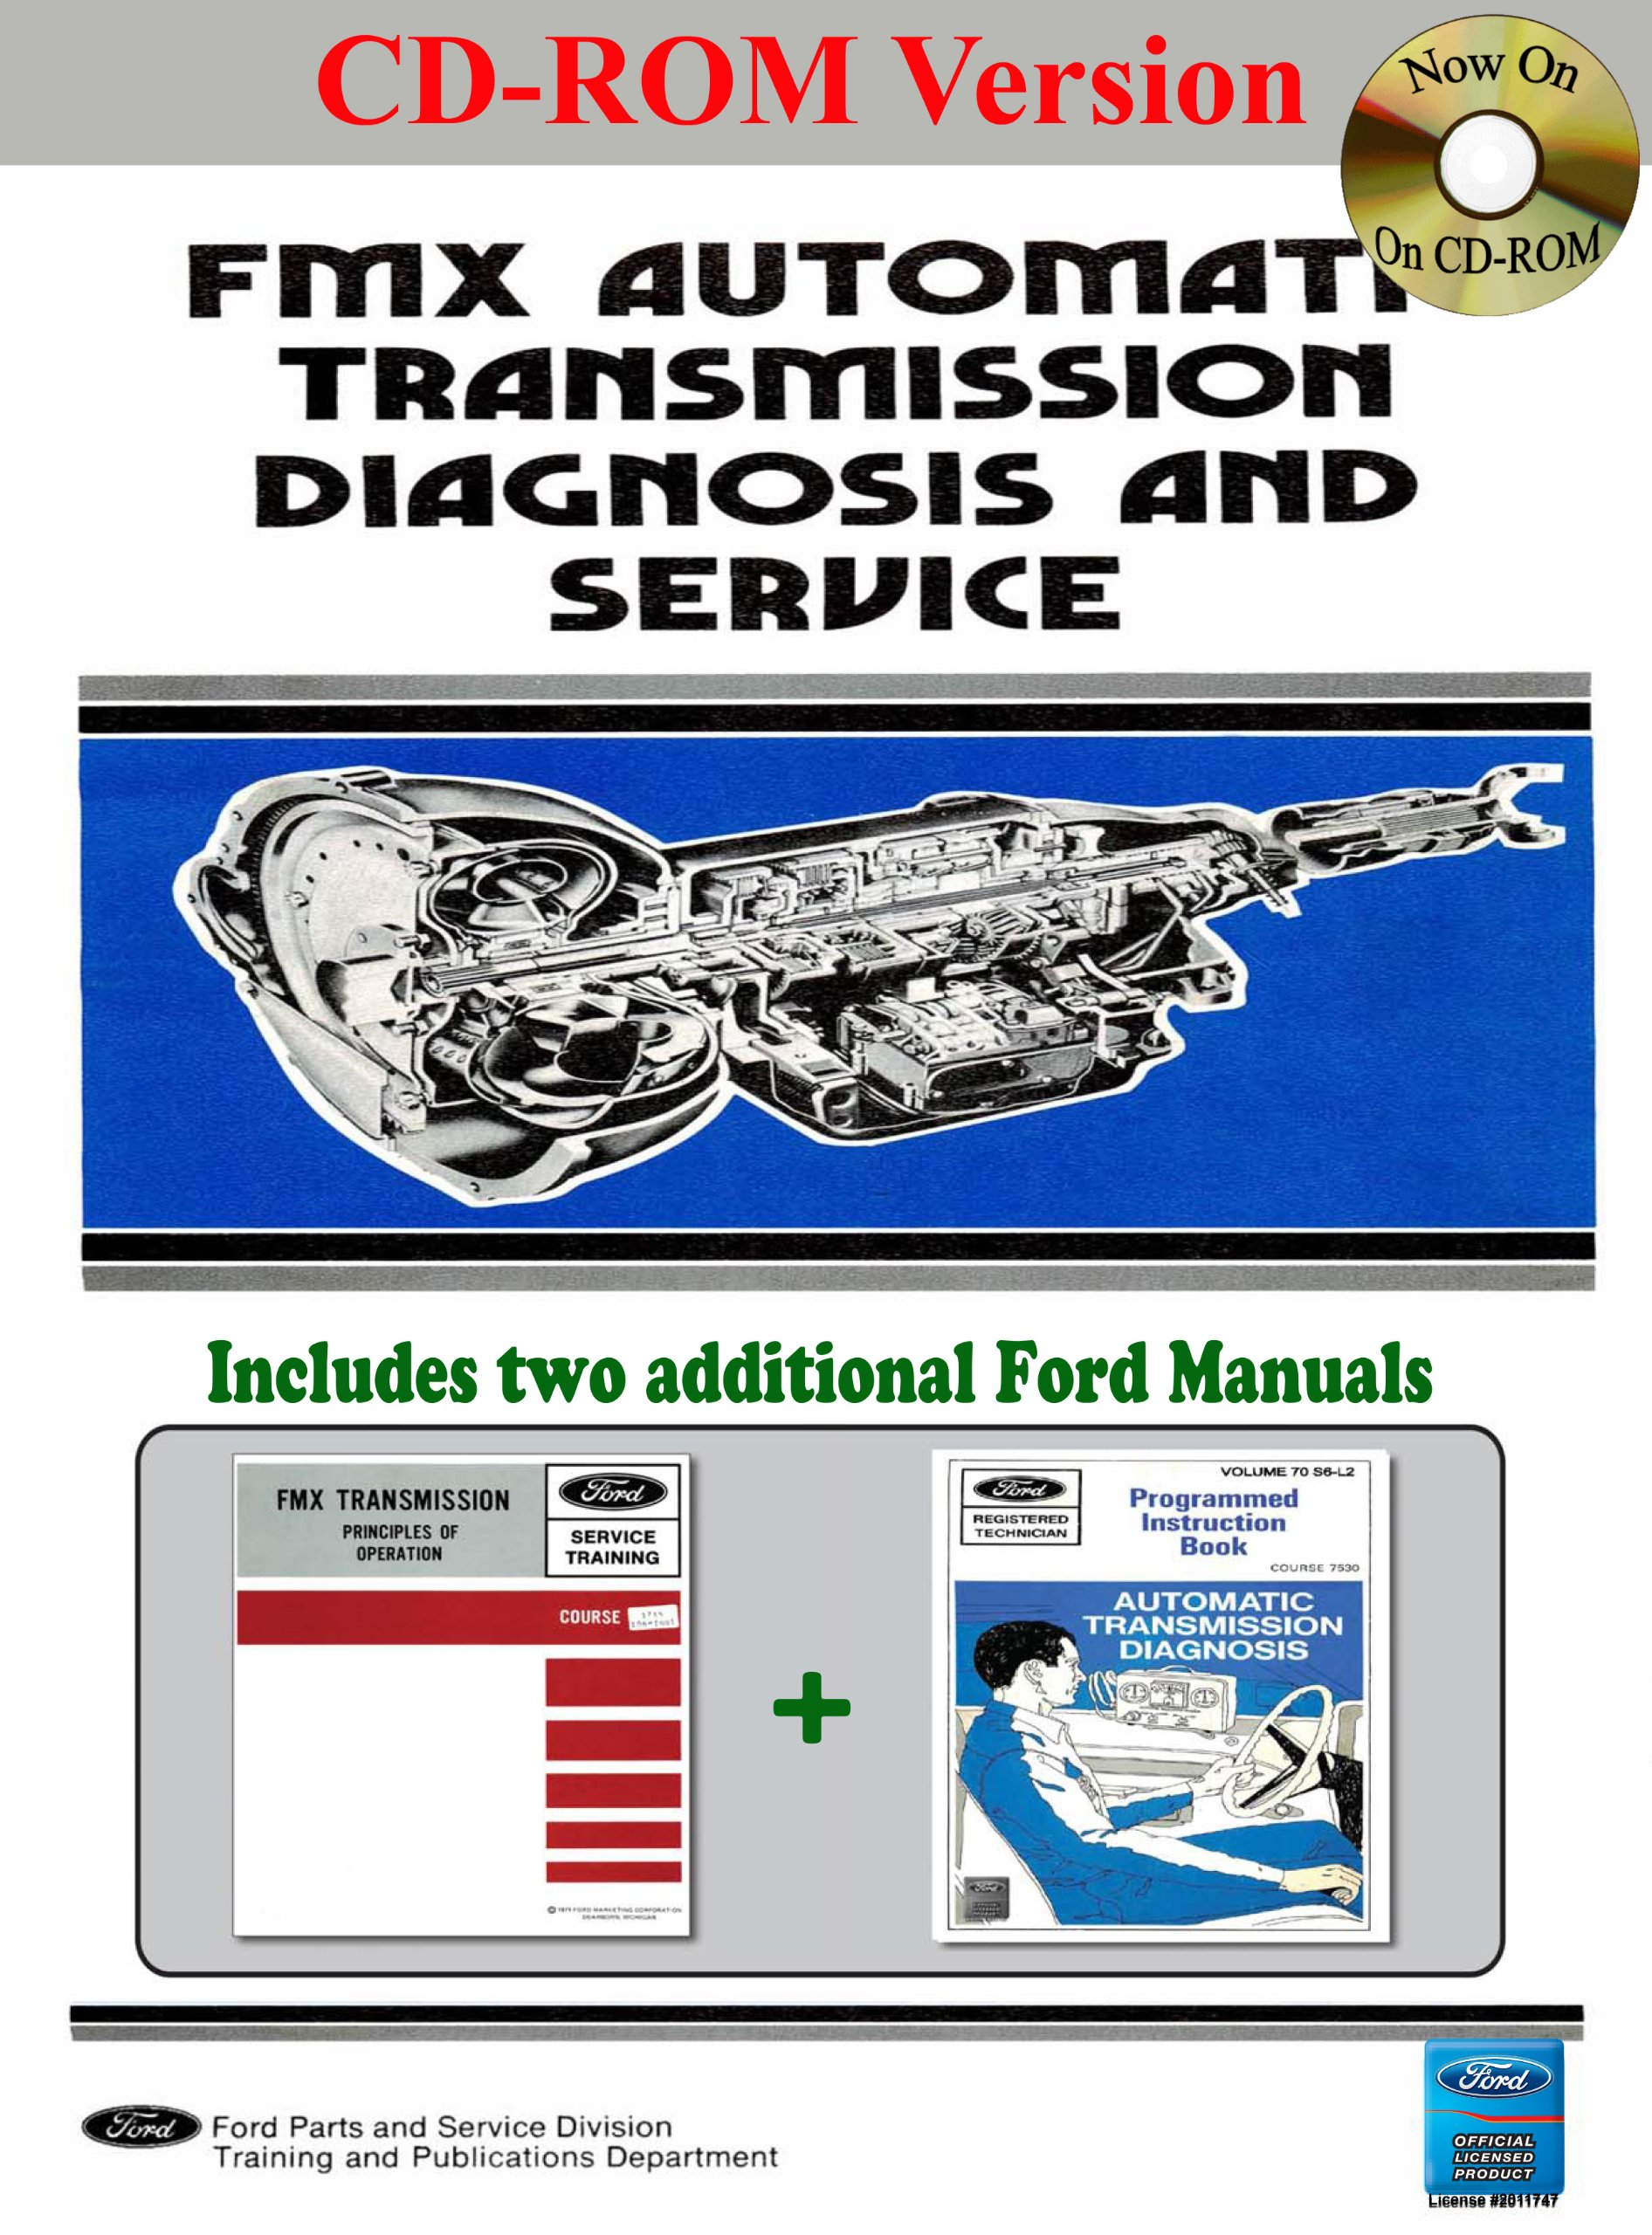 fmx automatic transmission diagnosis, service, and training manual C4 Transmission Exploded View fmx automatic transmission diagnosis, service, and training manual multimedia cd \u2013 september 12, 2013